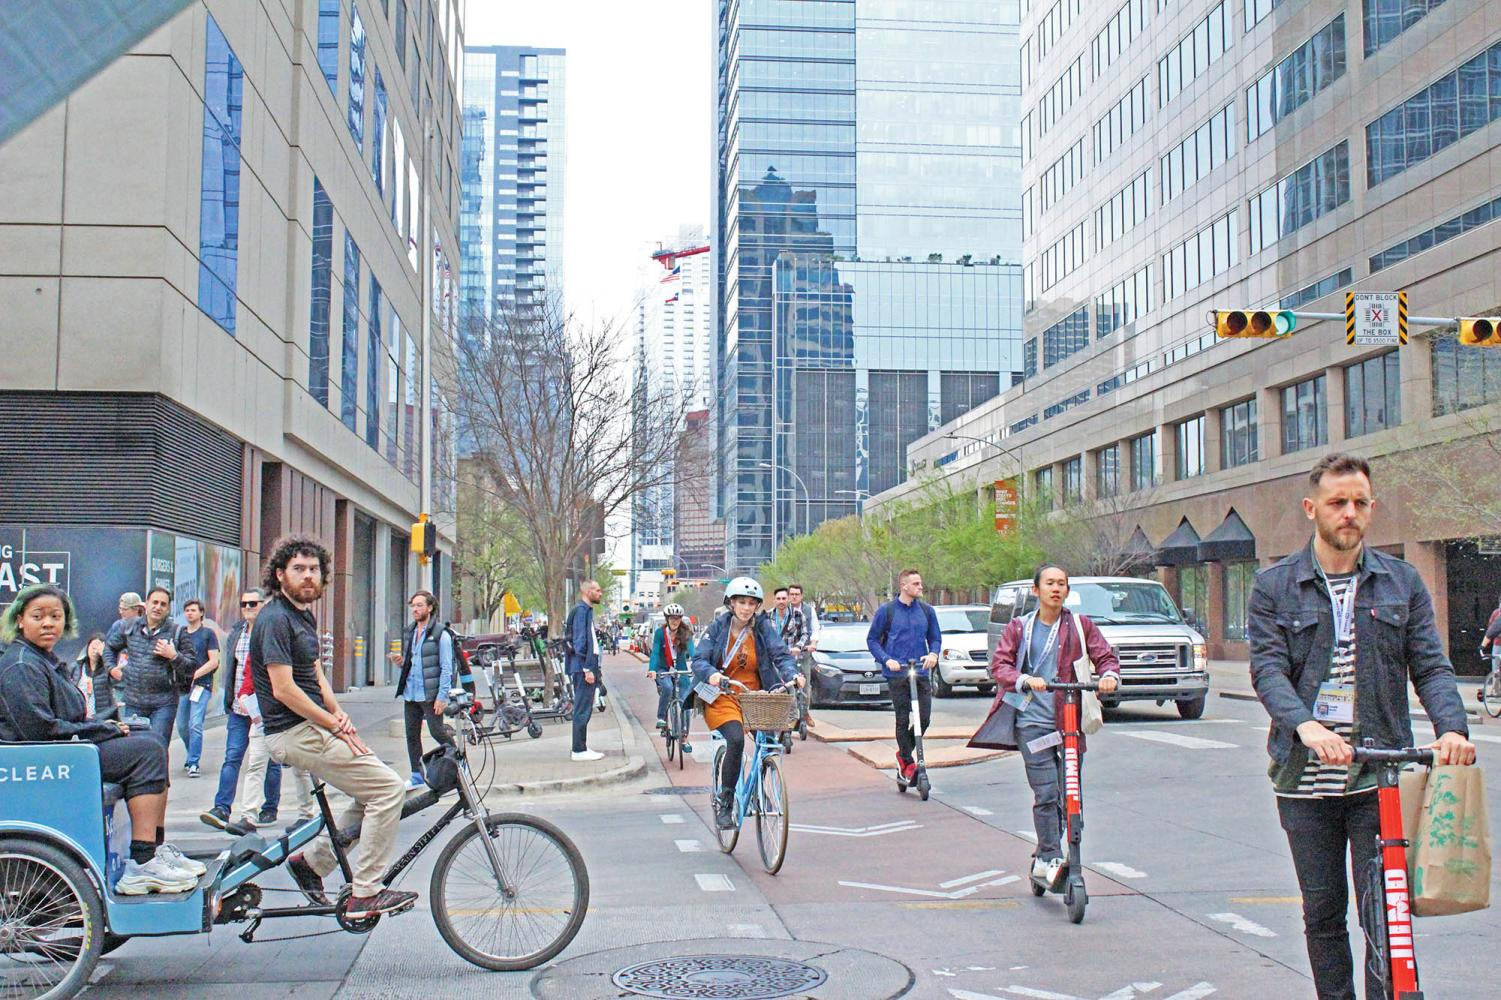 people ride the rentable scooters down 3rd street. The city has become overloaded with dockless mobility scooters, with almost 5,000 in the greater austin area alone